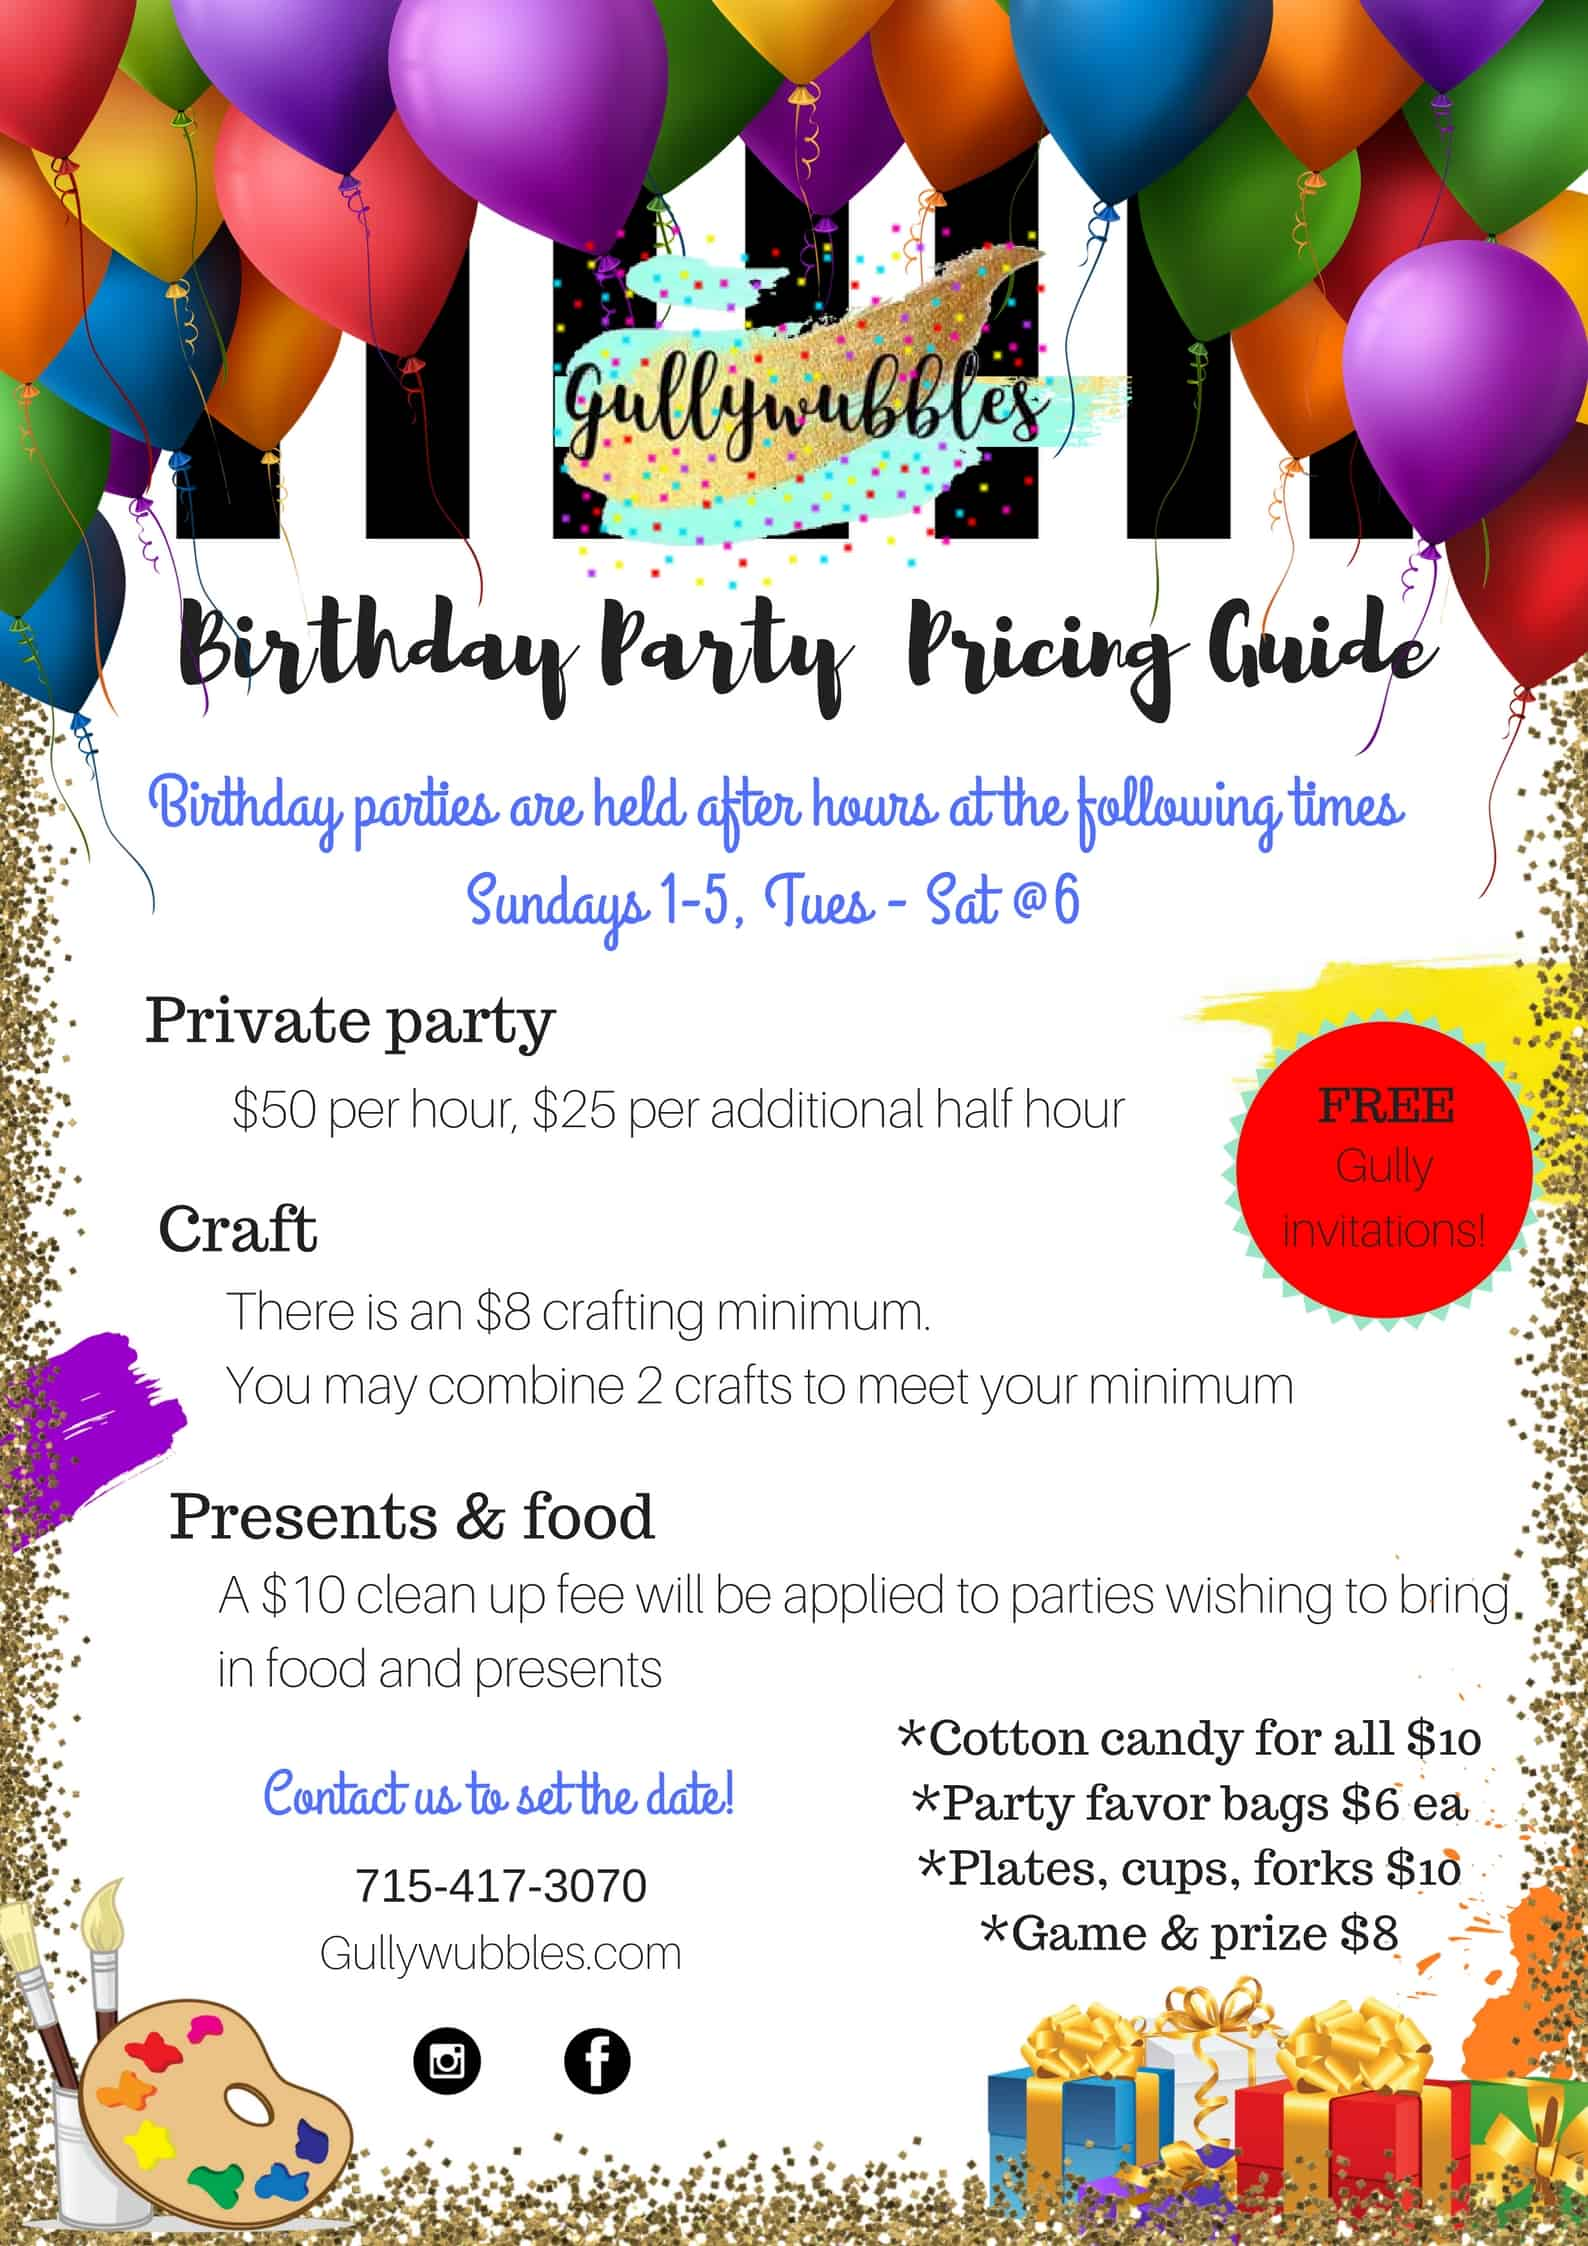 83+ Arts And Crafts Birthday Party Ideas - Arts And Crafts Birthday ...